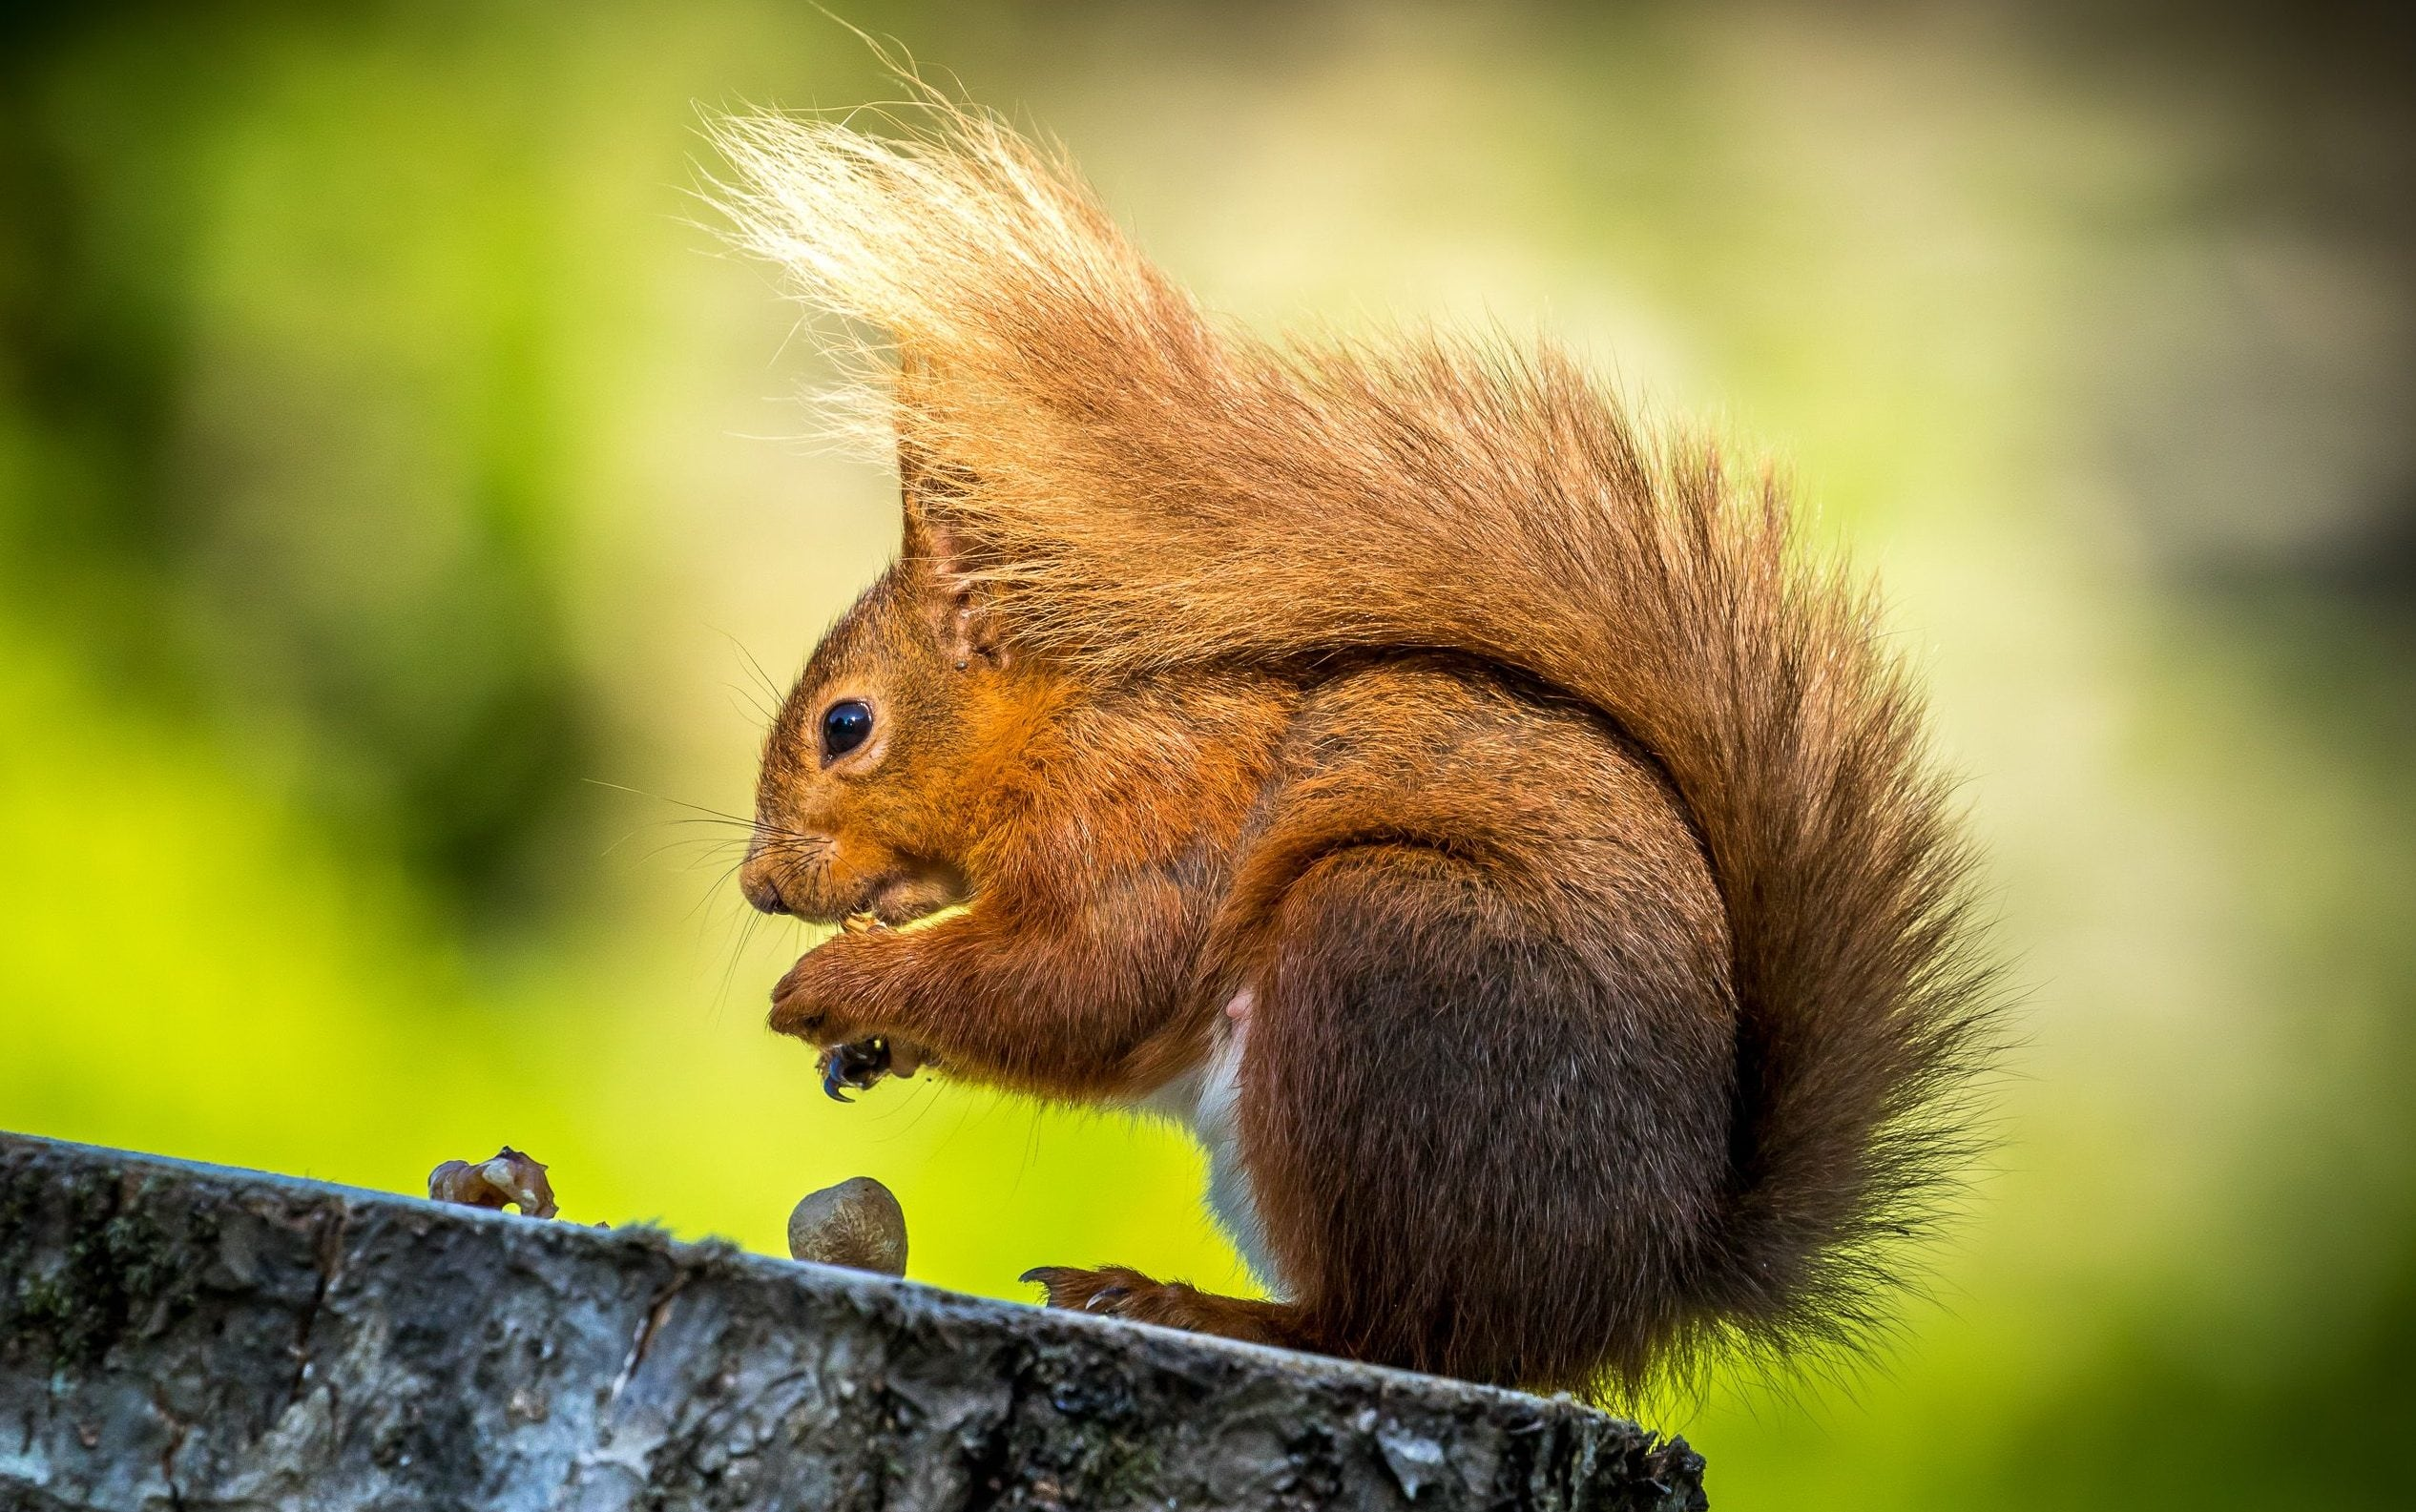 Squirrels could hold secret to preventing brain damage for stroke patients